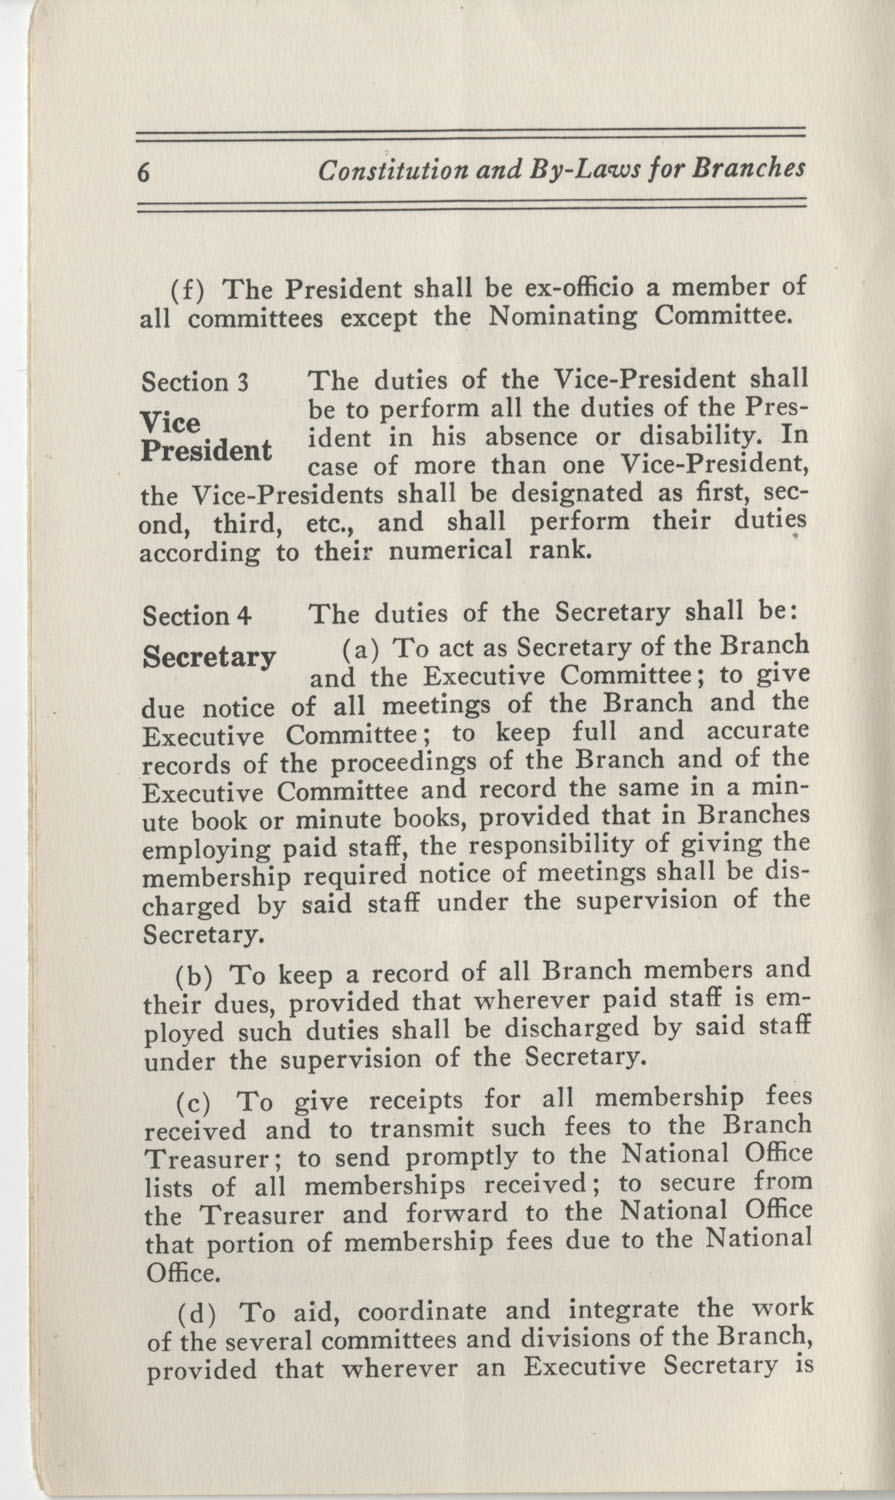 Constitutions and By-Laws, September 1960, Page 6